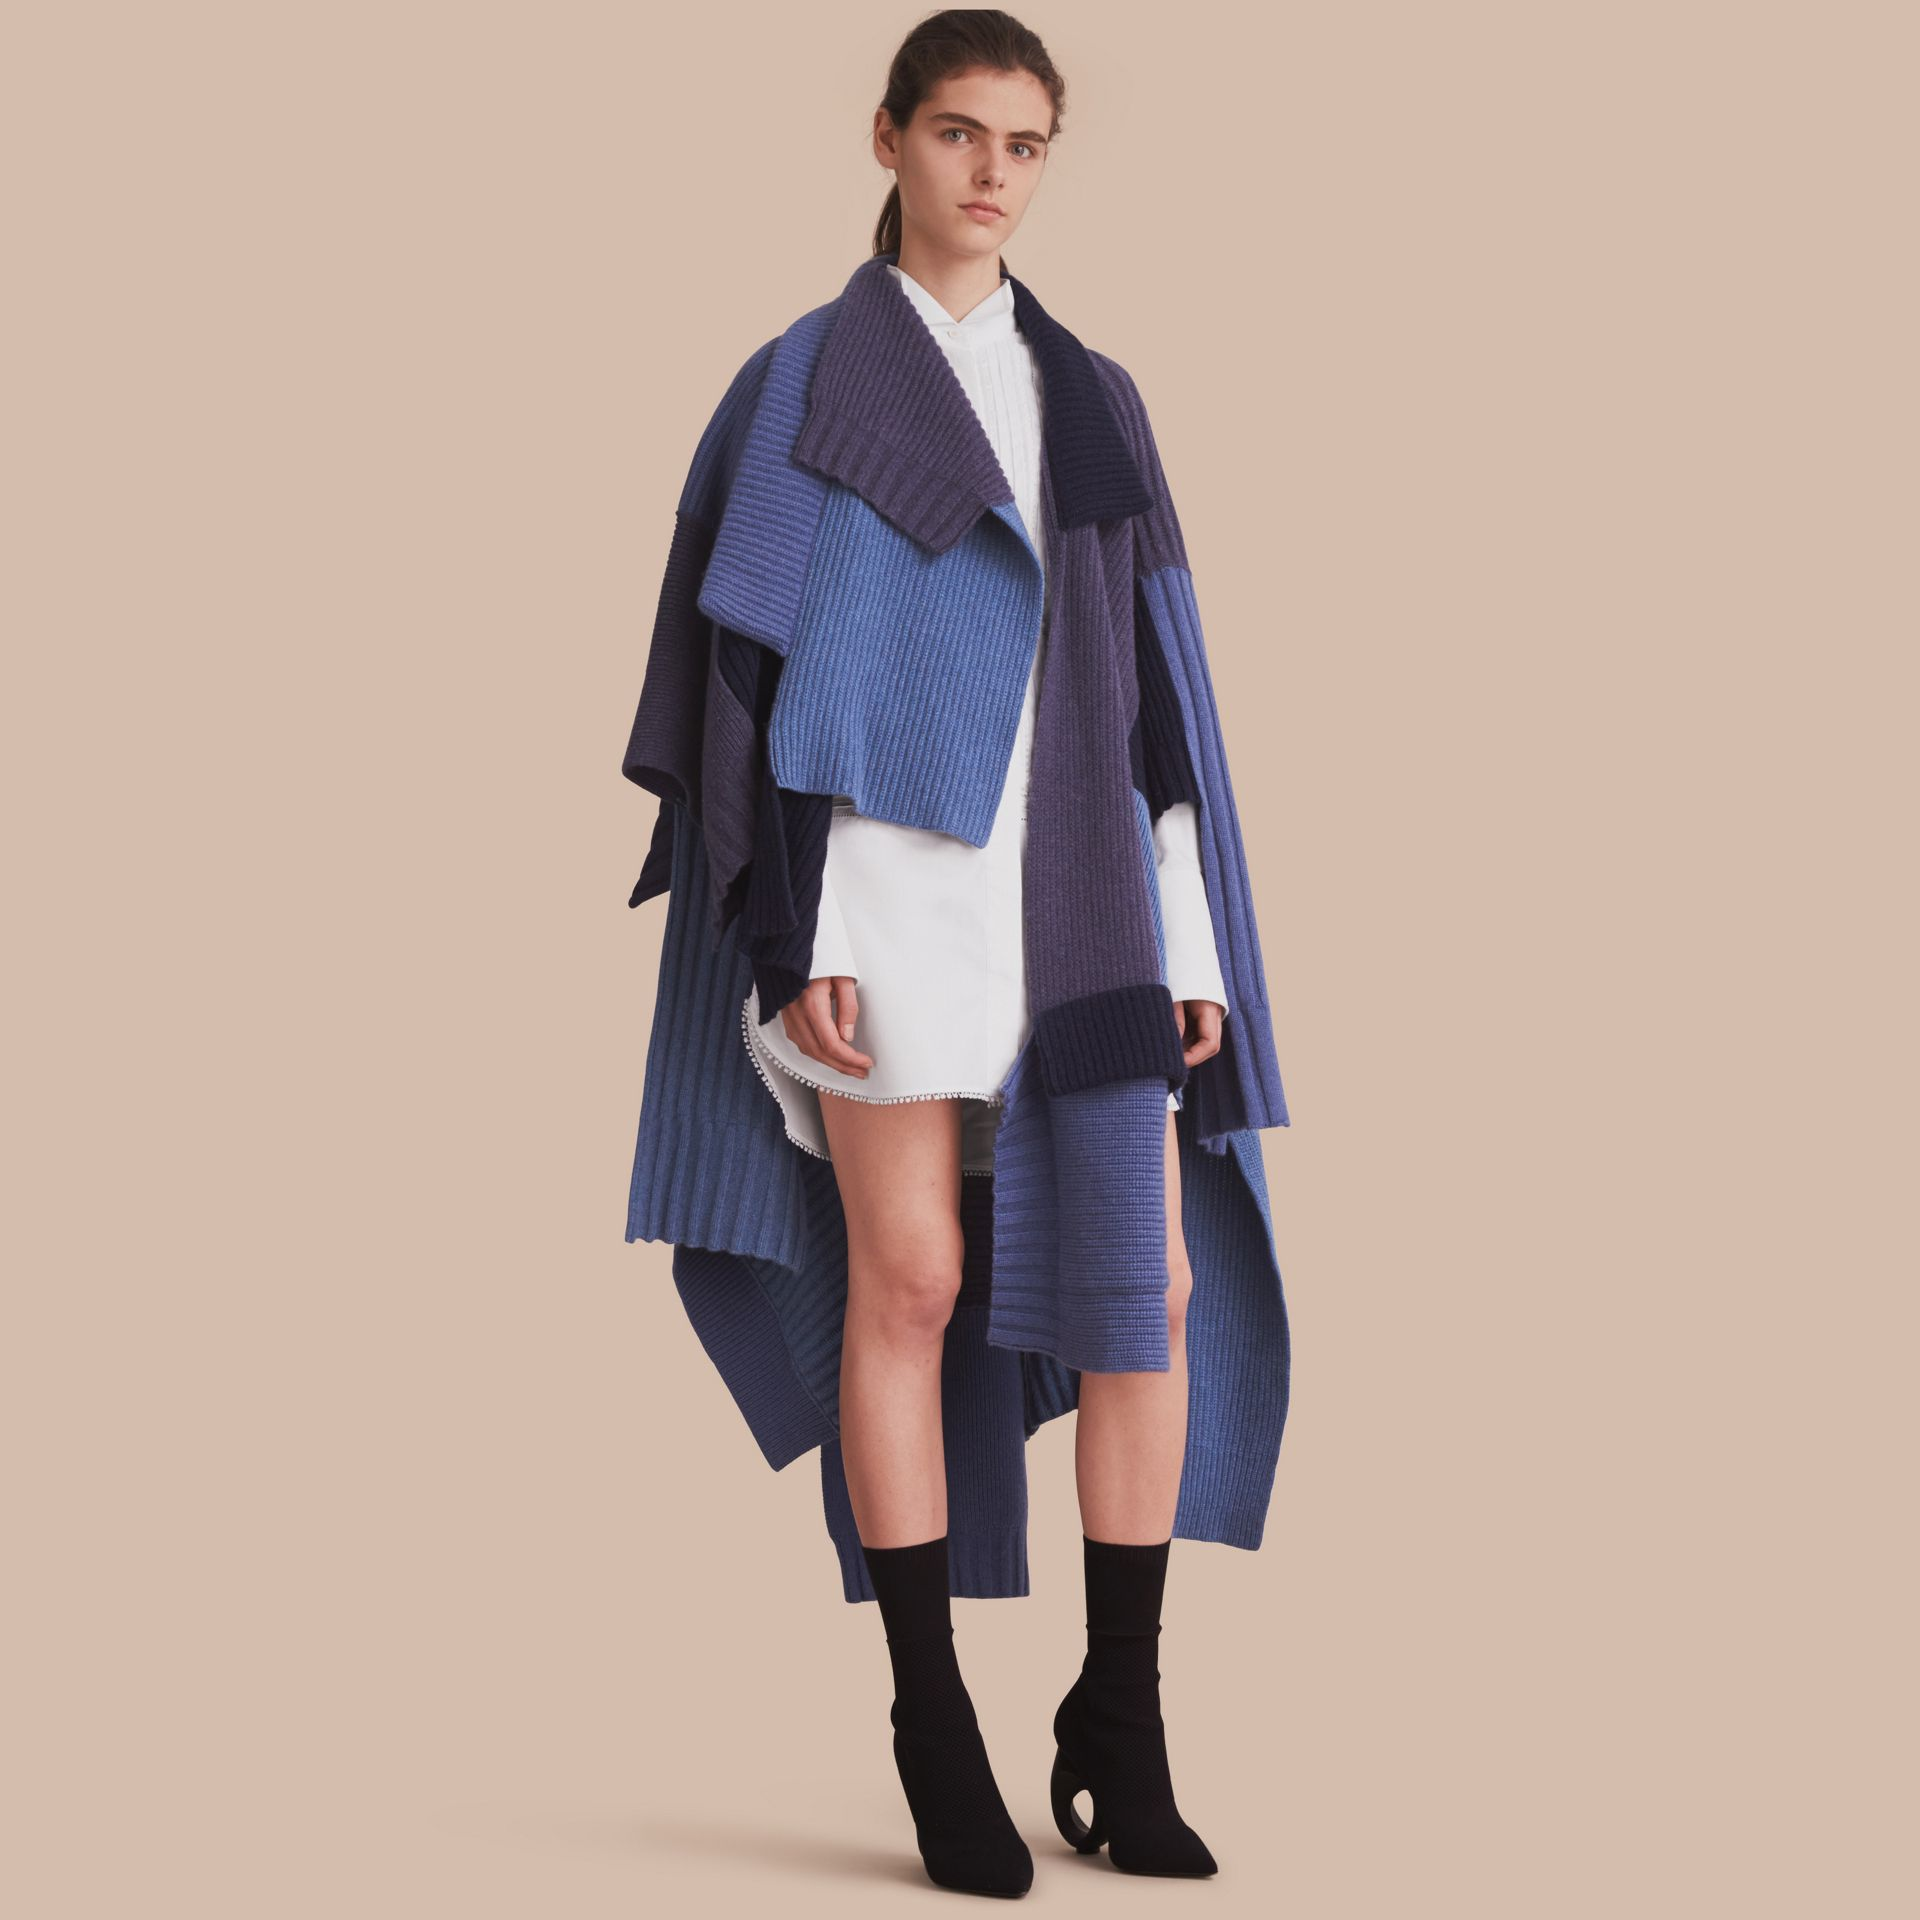 Wool Cashmere Patchwork Poncho in Carbon Blue - Women | Burberry - gallery image 1